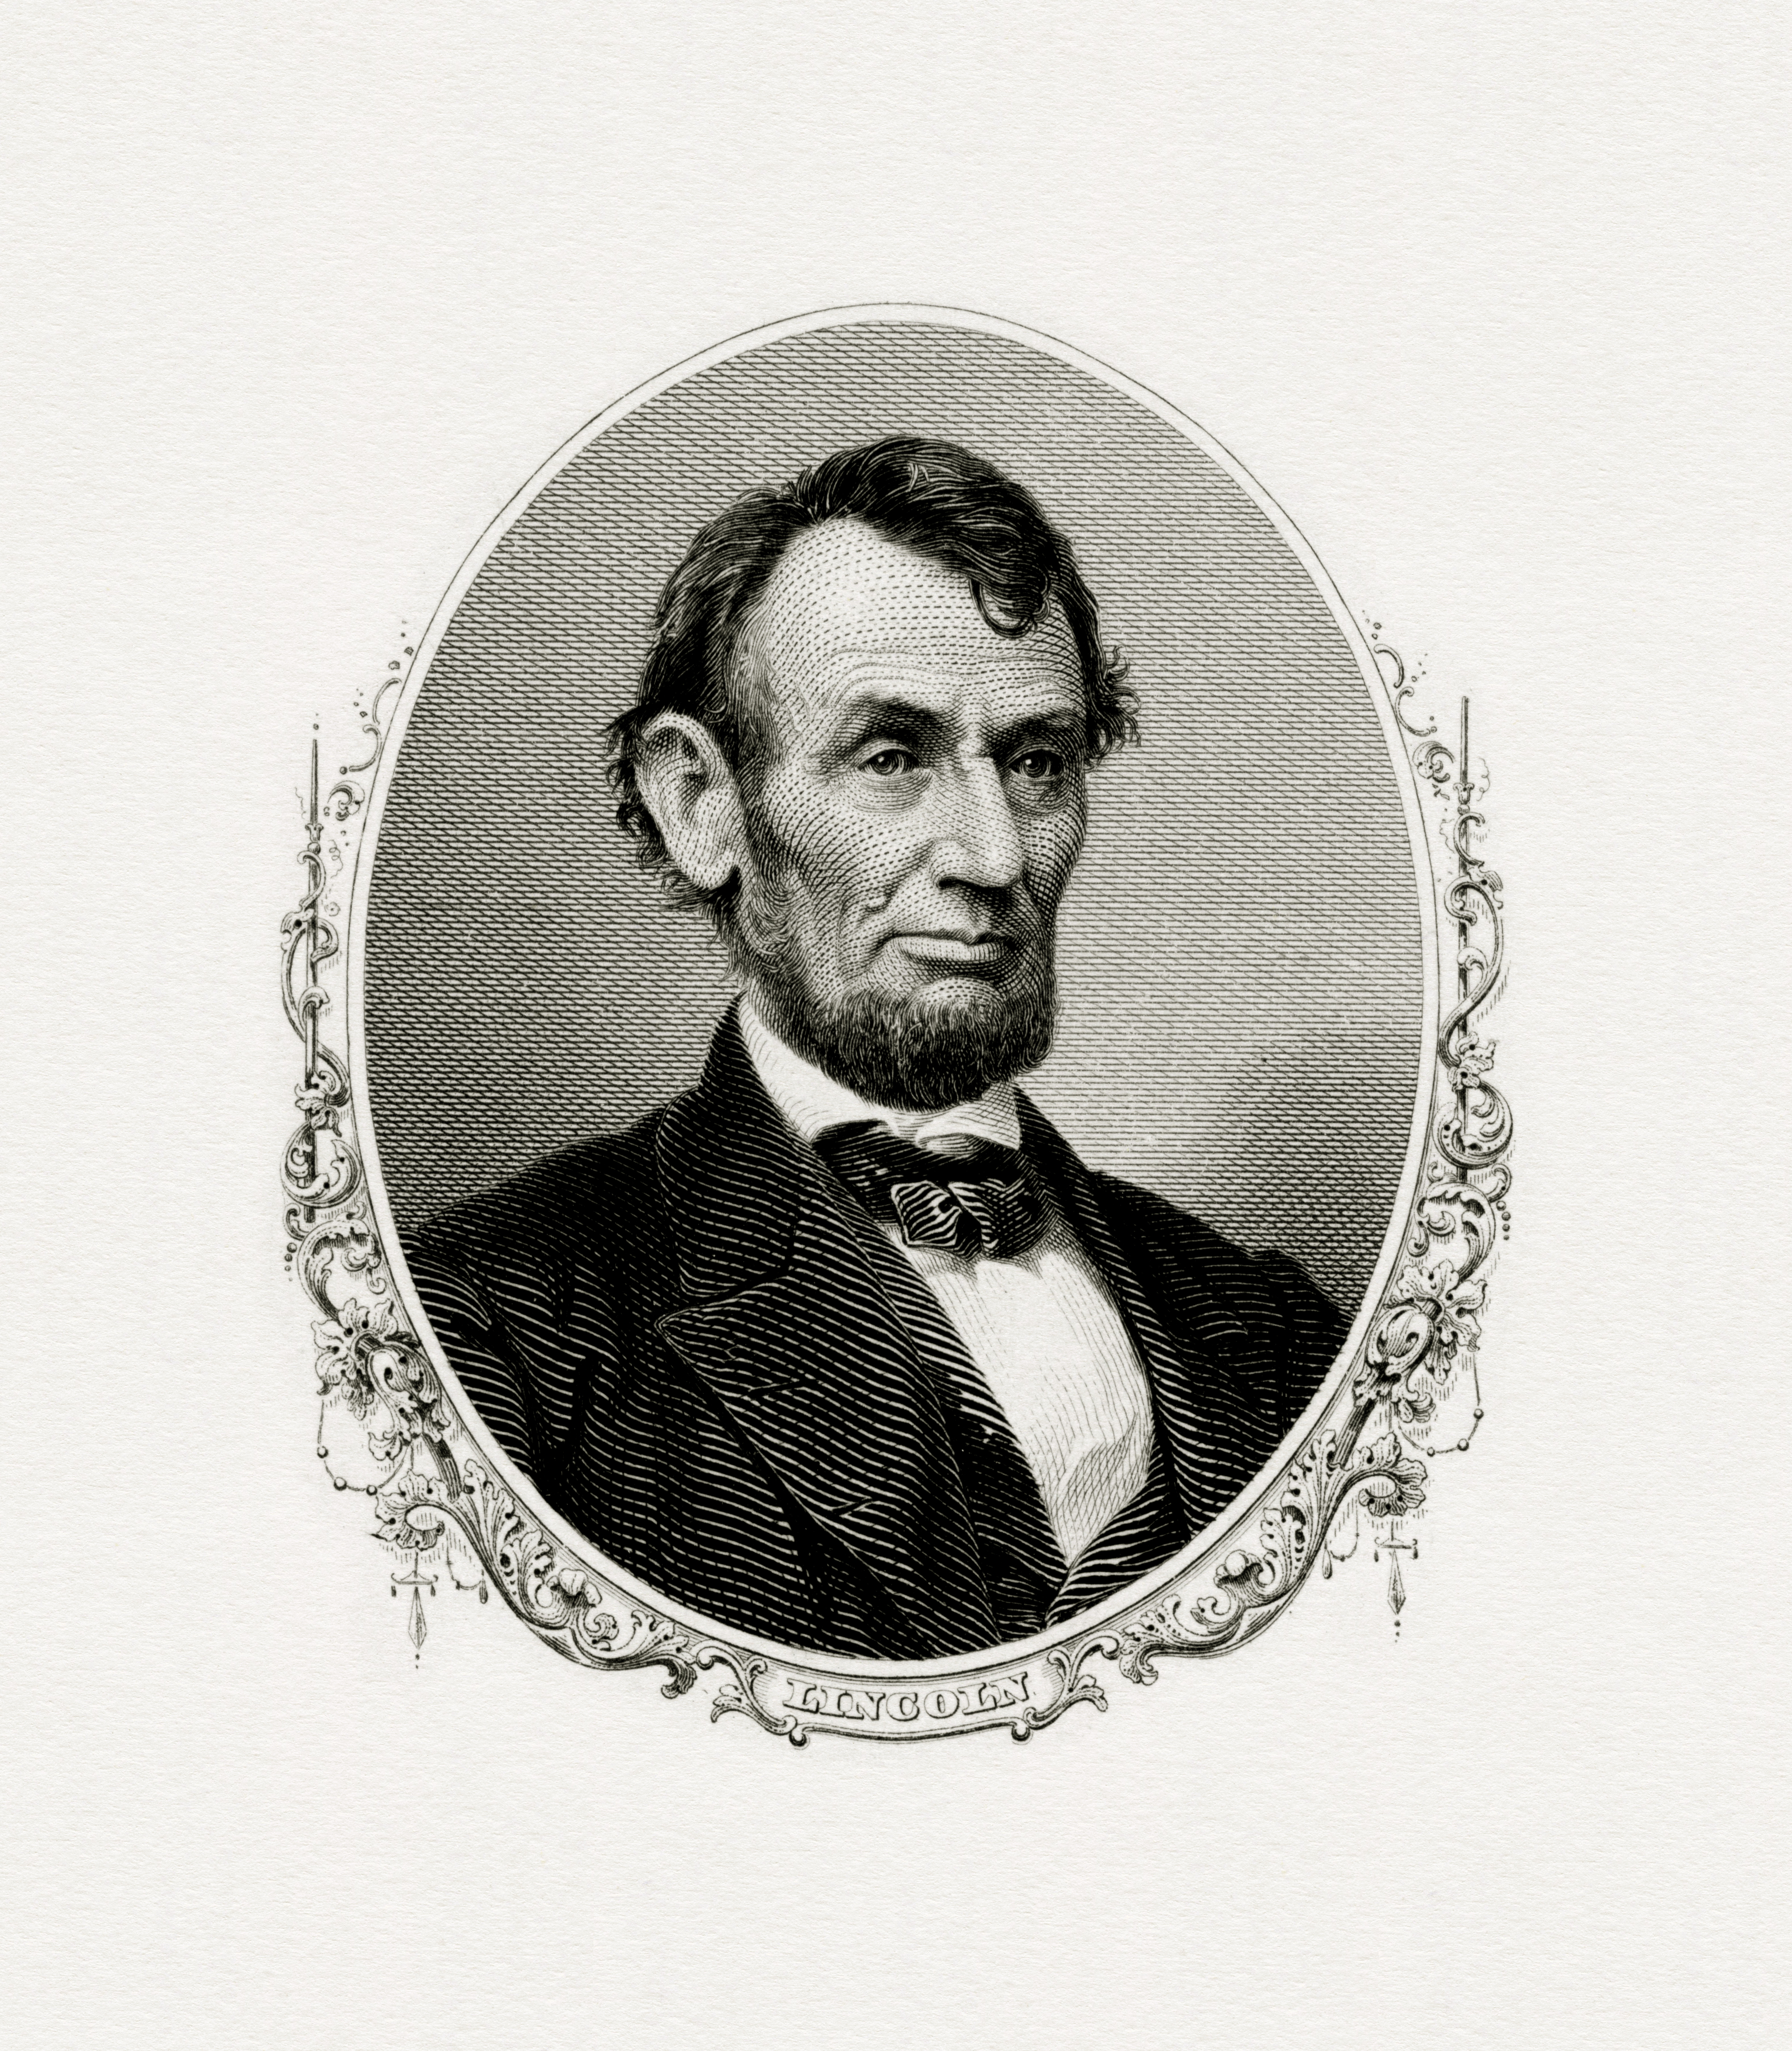 Bureau of Engraving and Printing engraved portrait of President Abraham Lincoln.